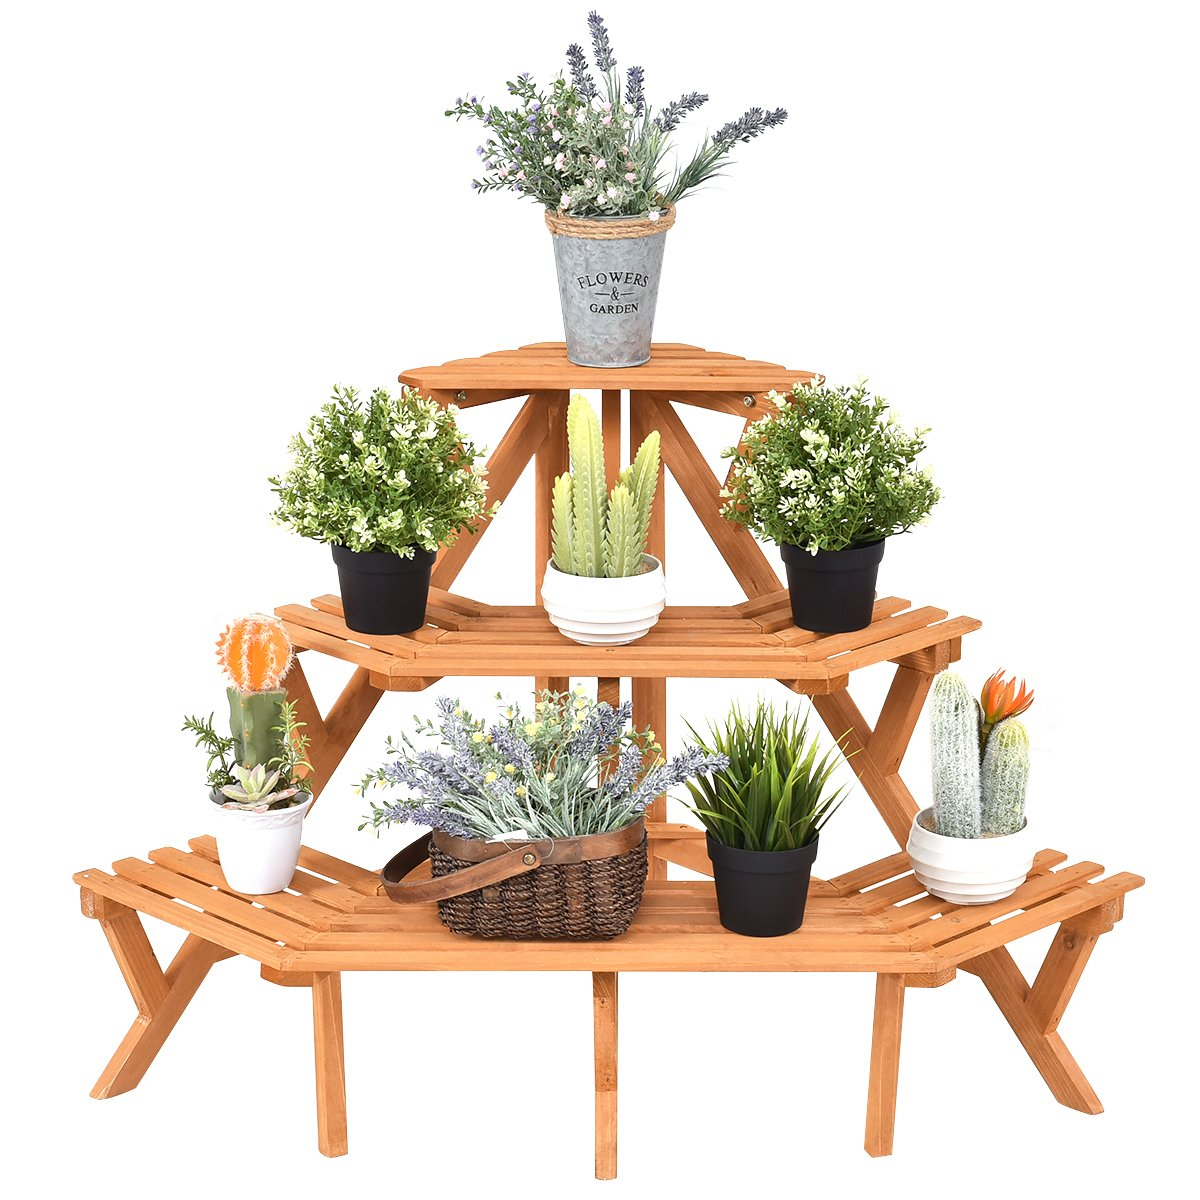 Giantex 3-Tier Free Standing Plant Stand Corner Flower Pot Holder Display Rack Stand, Natural Wood by Giantex